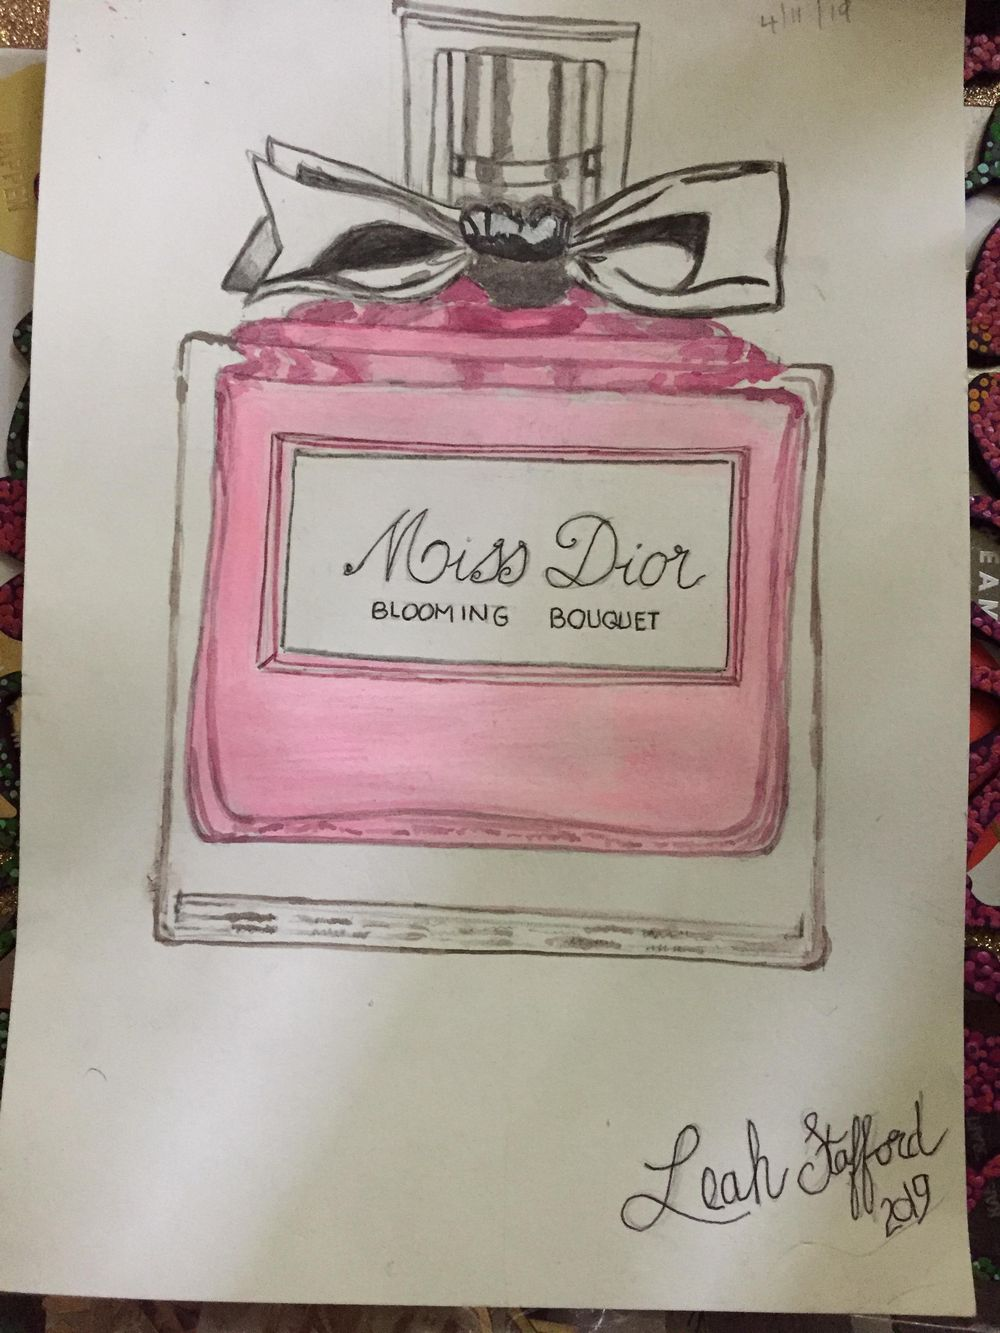 miss Dior bottle - image 1 - student project